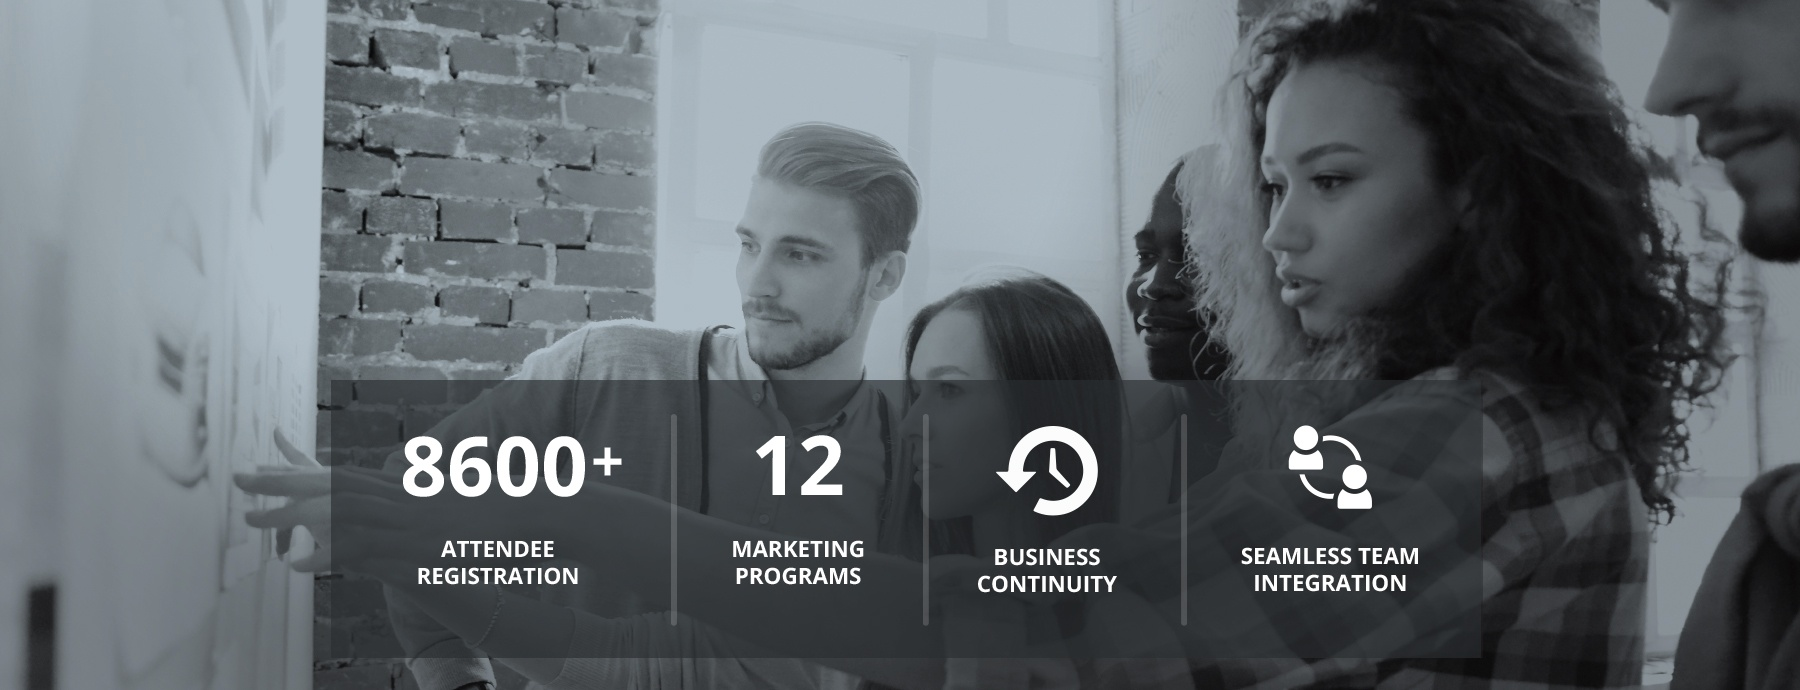 Case Study   Managed Marketing Service for User Conference